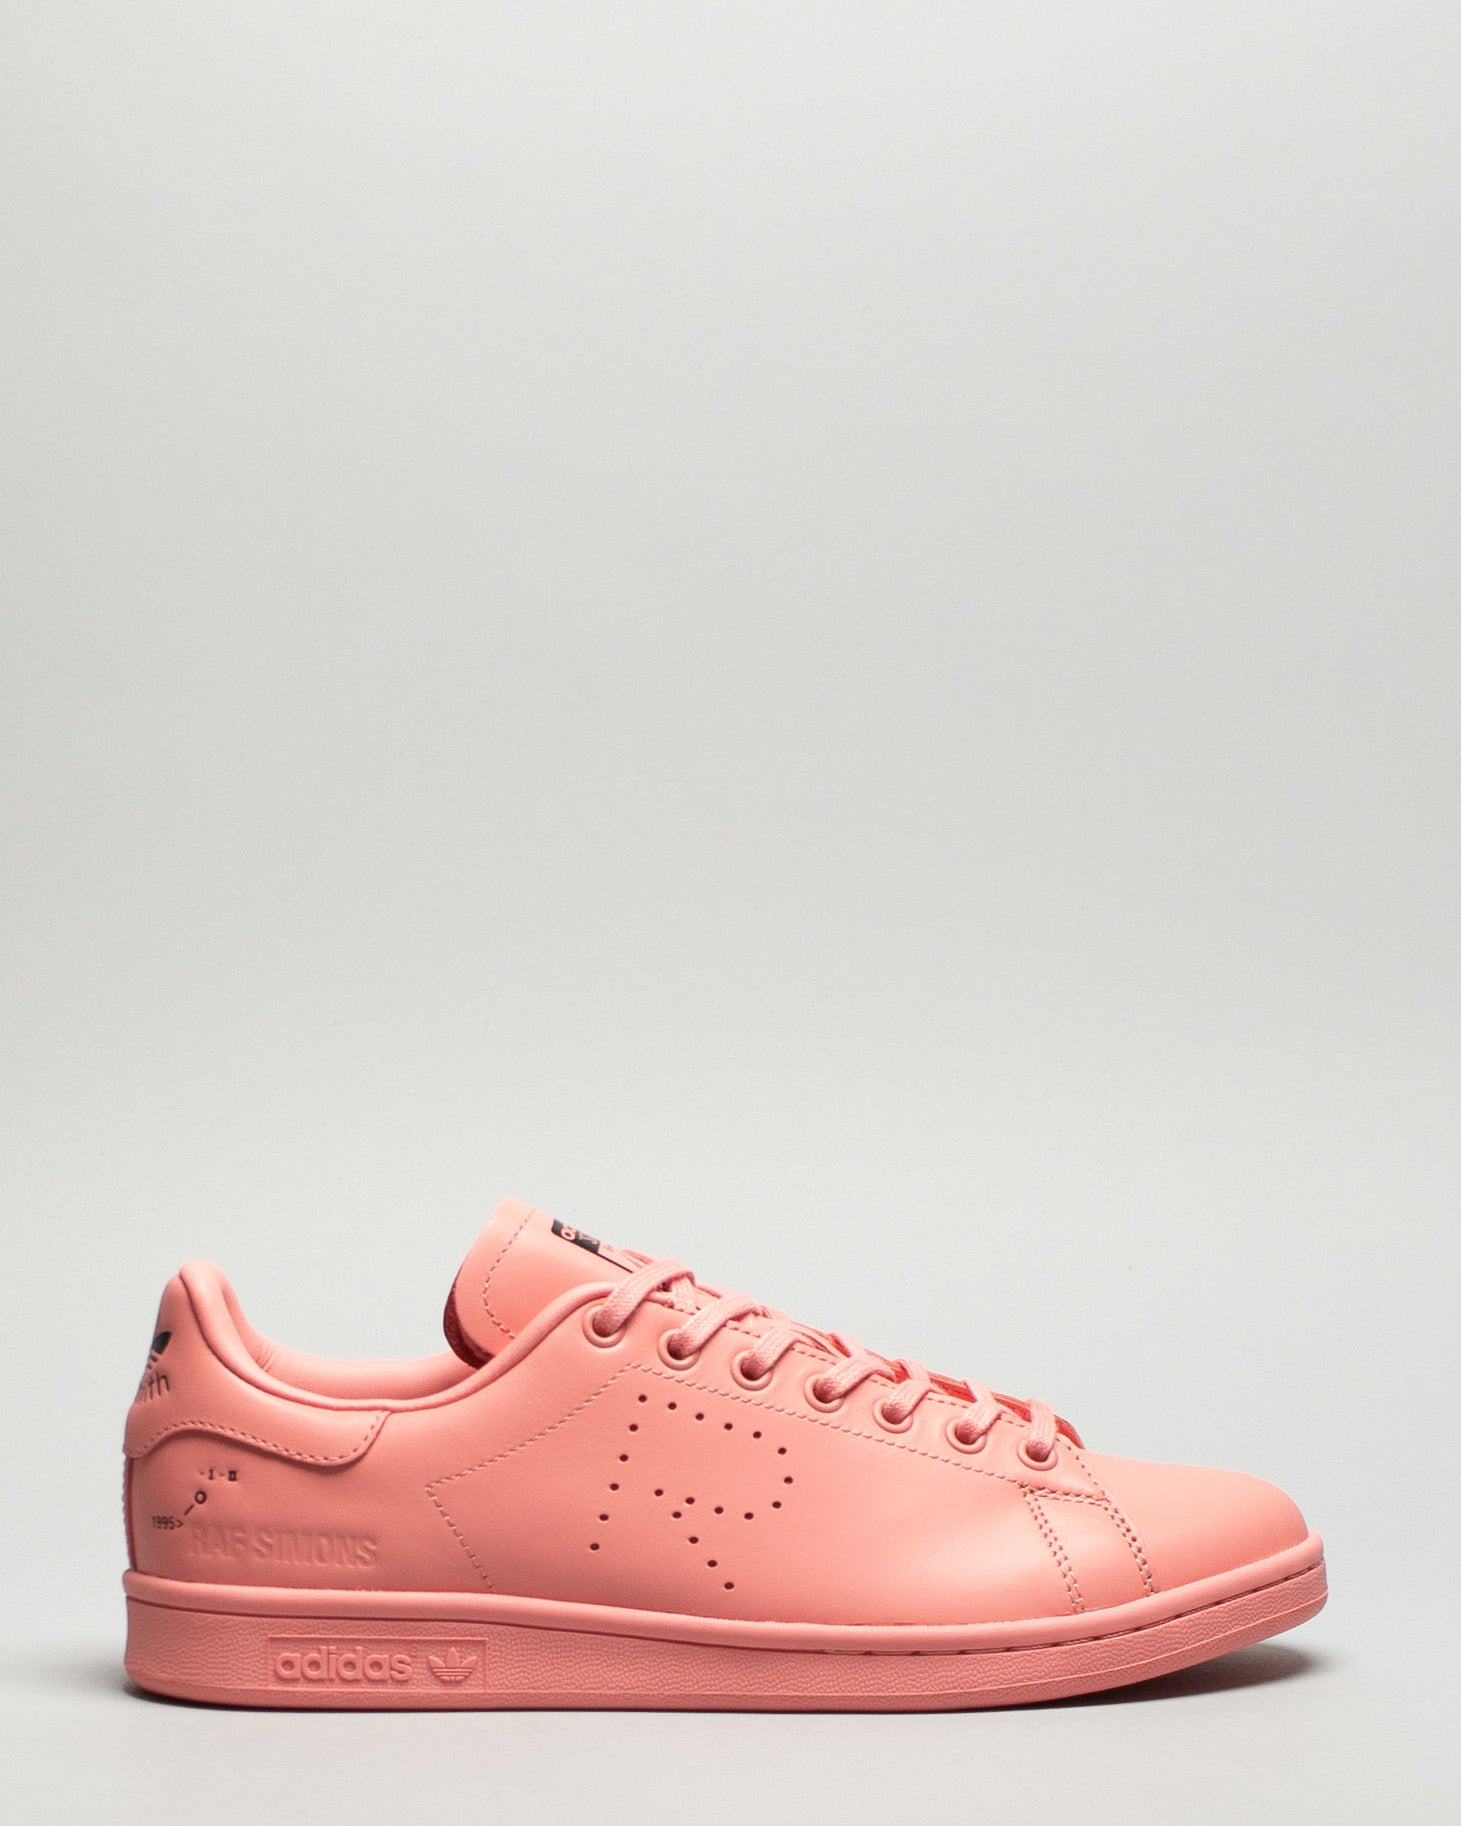 RS Stan Smith Tactile Rose/Bliss Pink